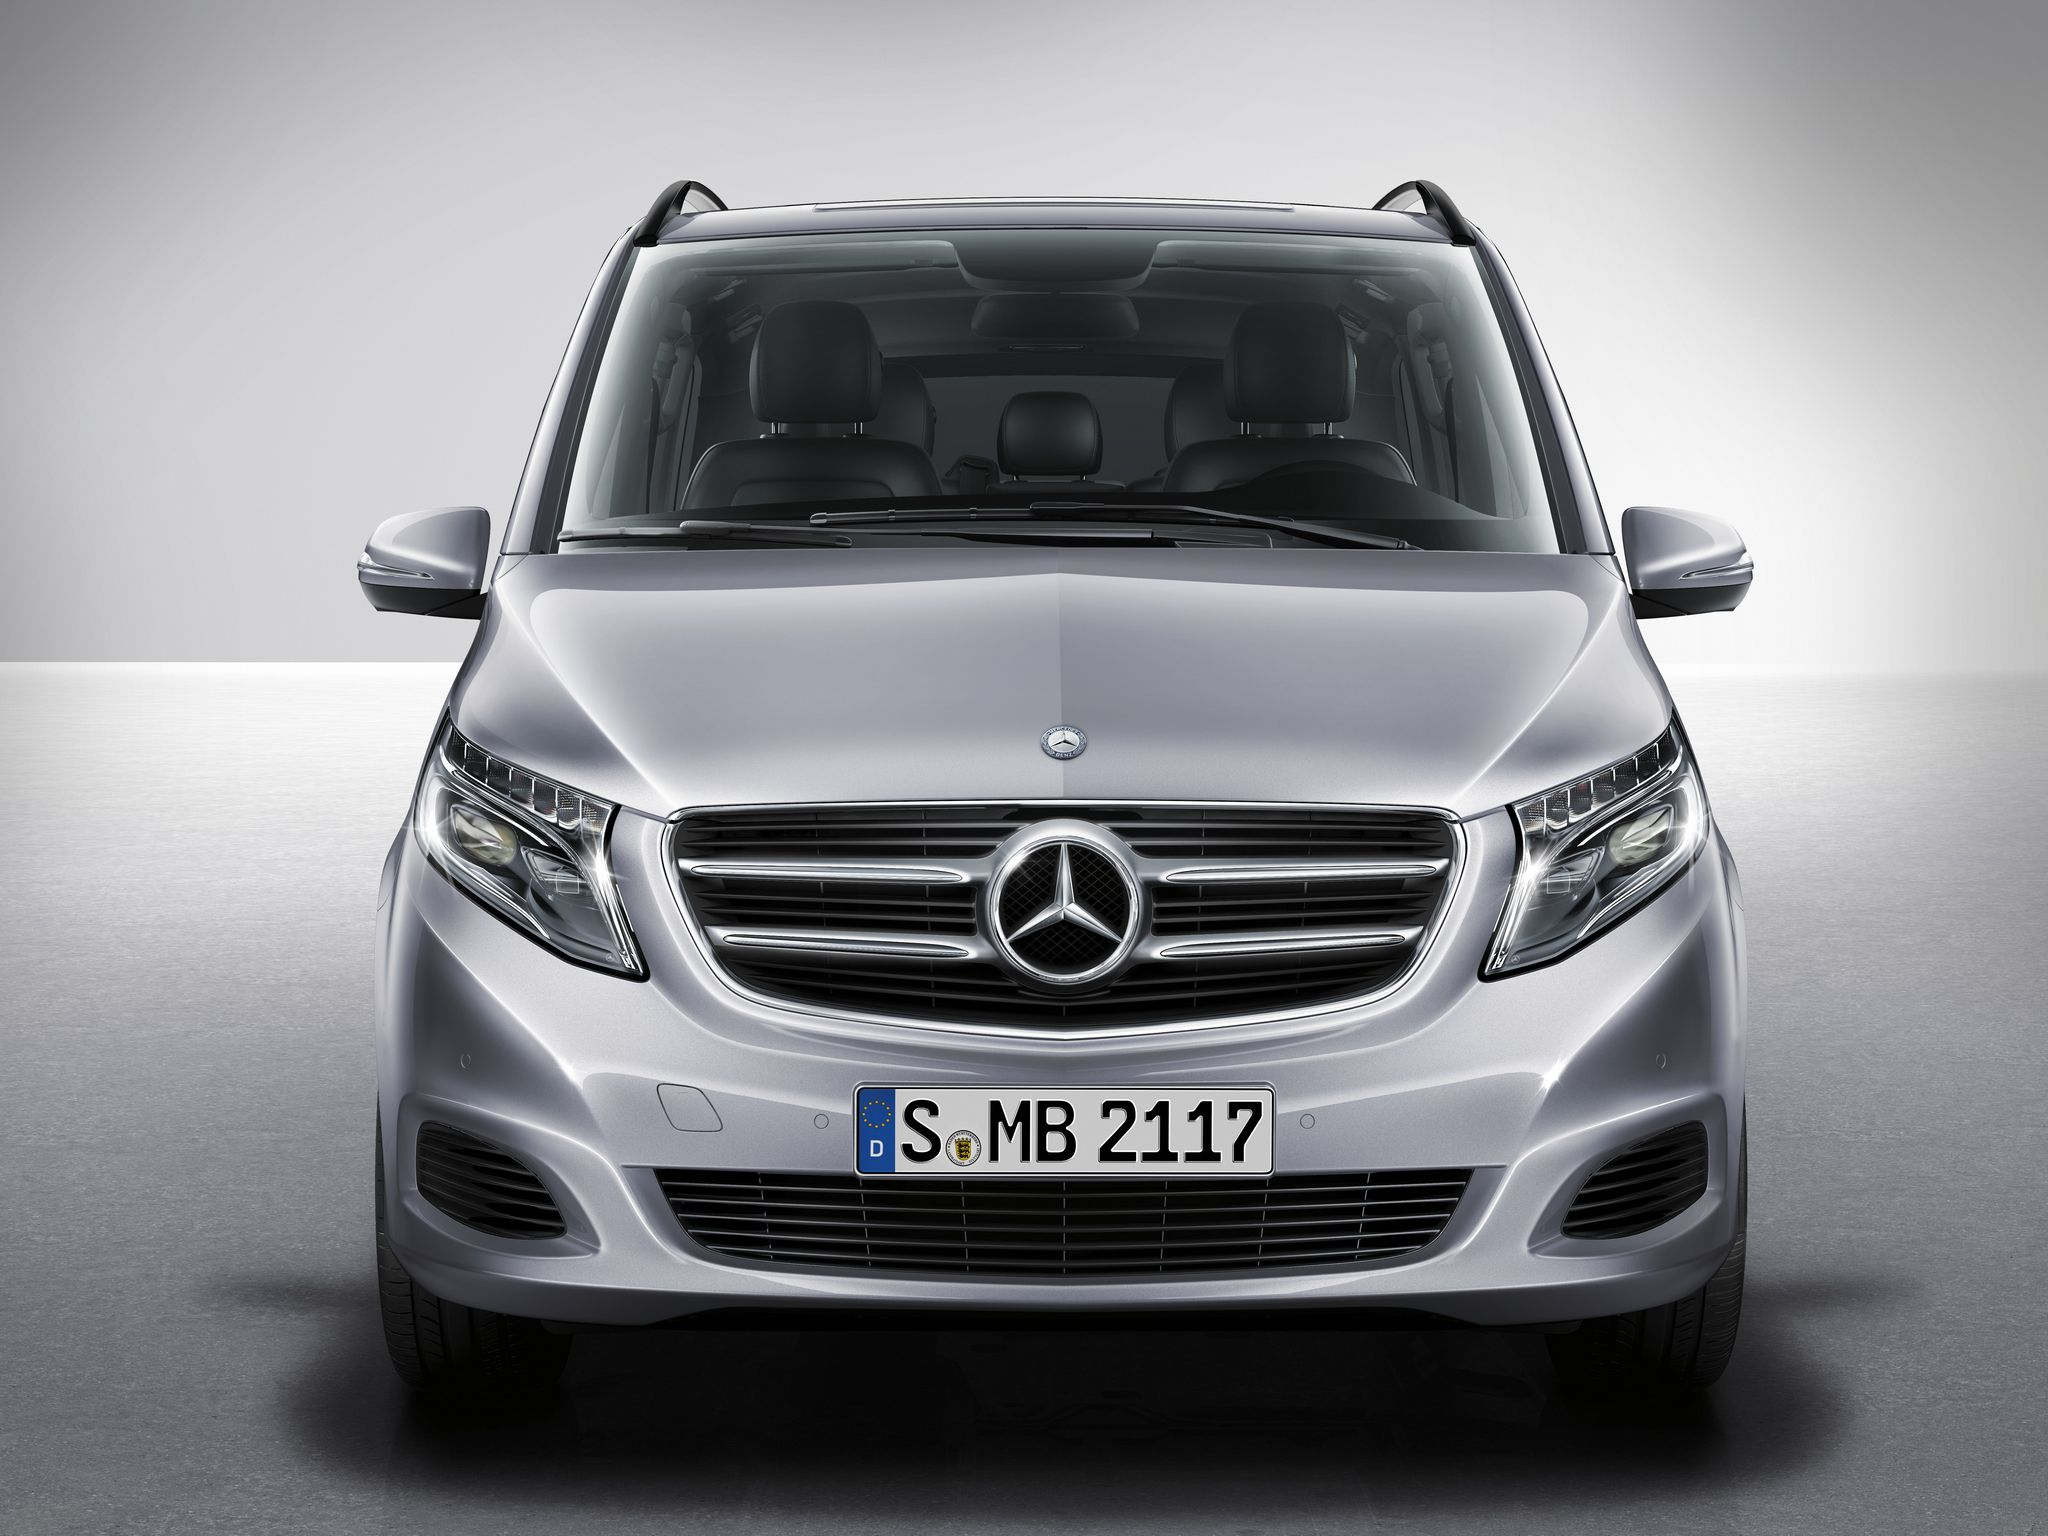 2015 mercedes v class comes with sports package option a mercedes benz fan blog. Black Bedroom Furniture Sets. Home Design Ideas